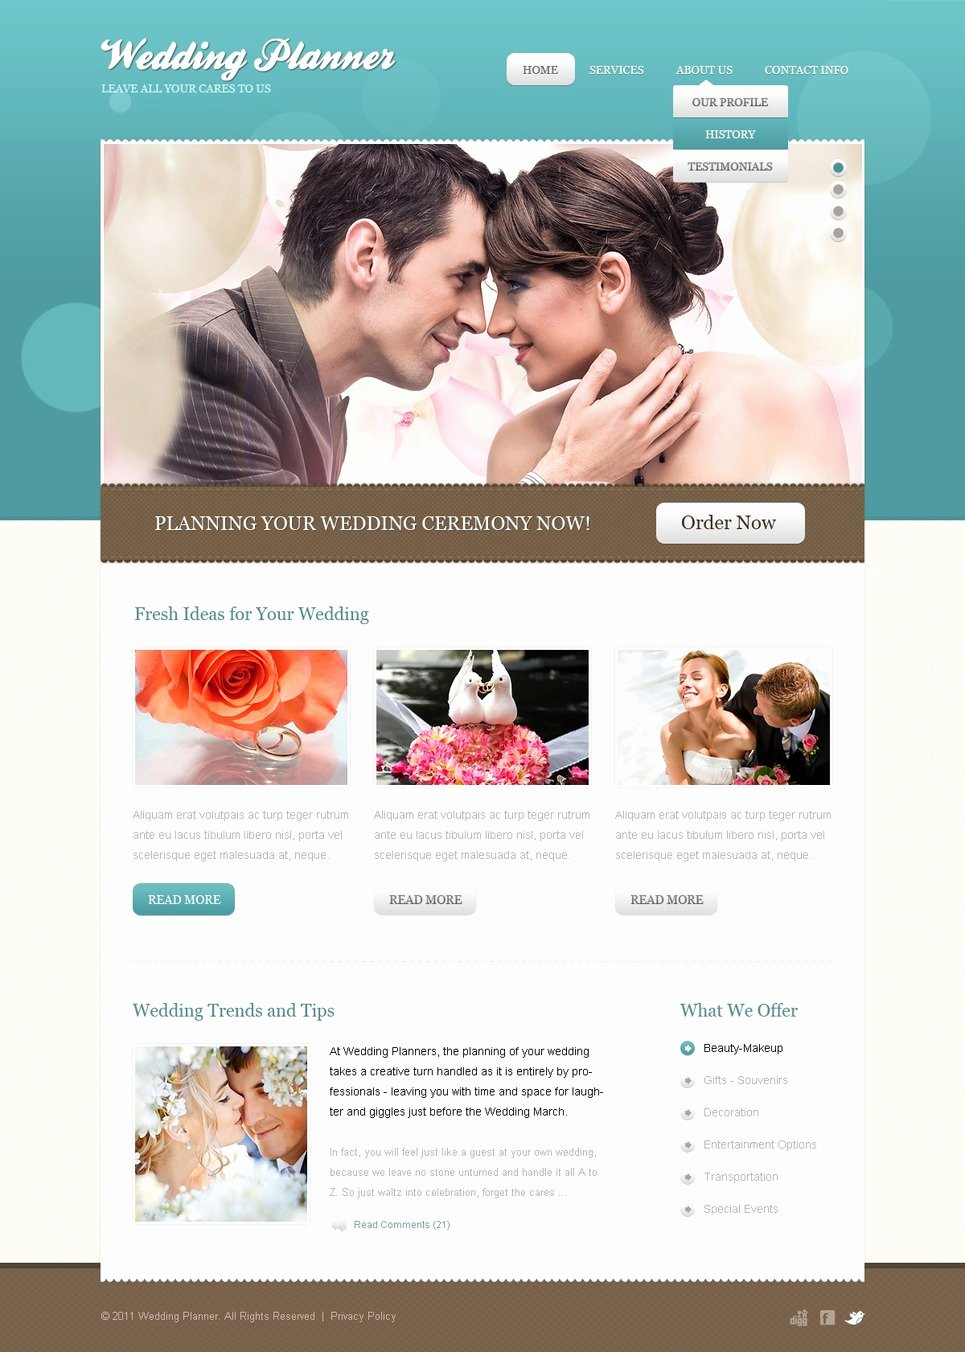 Wedding Planner Website Template Elegant Wedding Planner Website Template